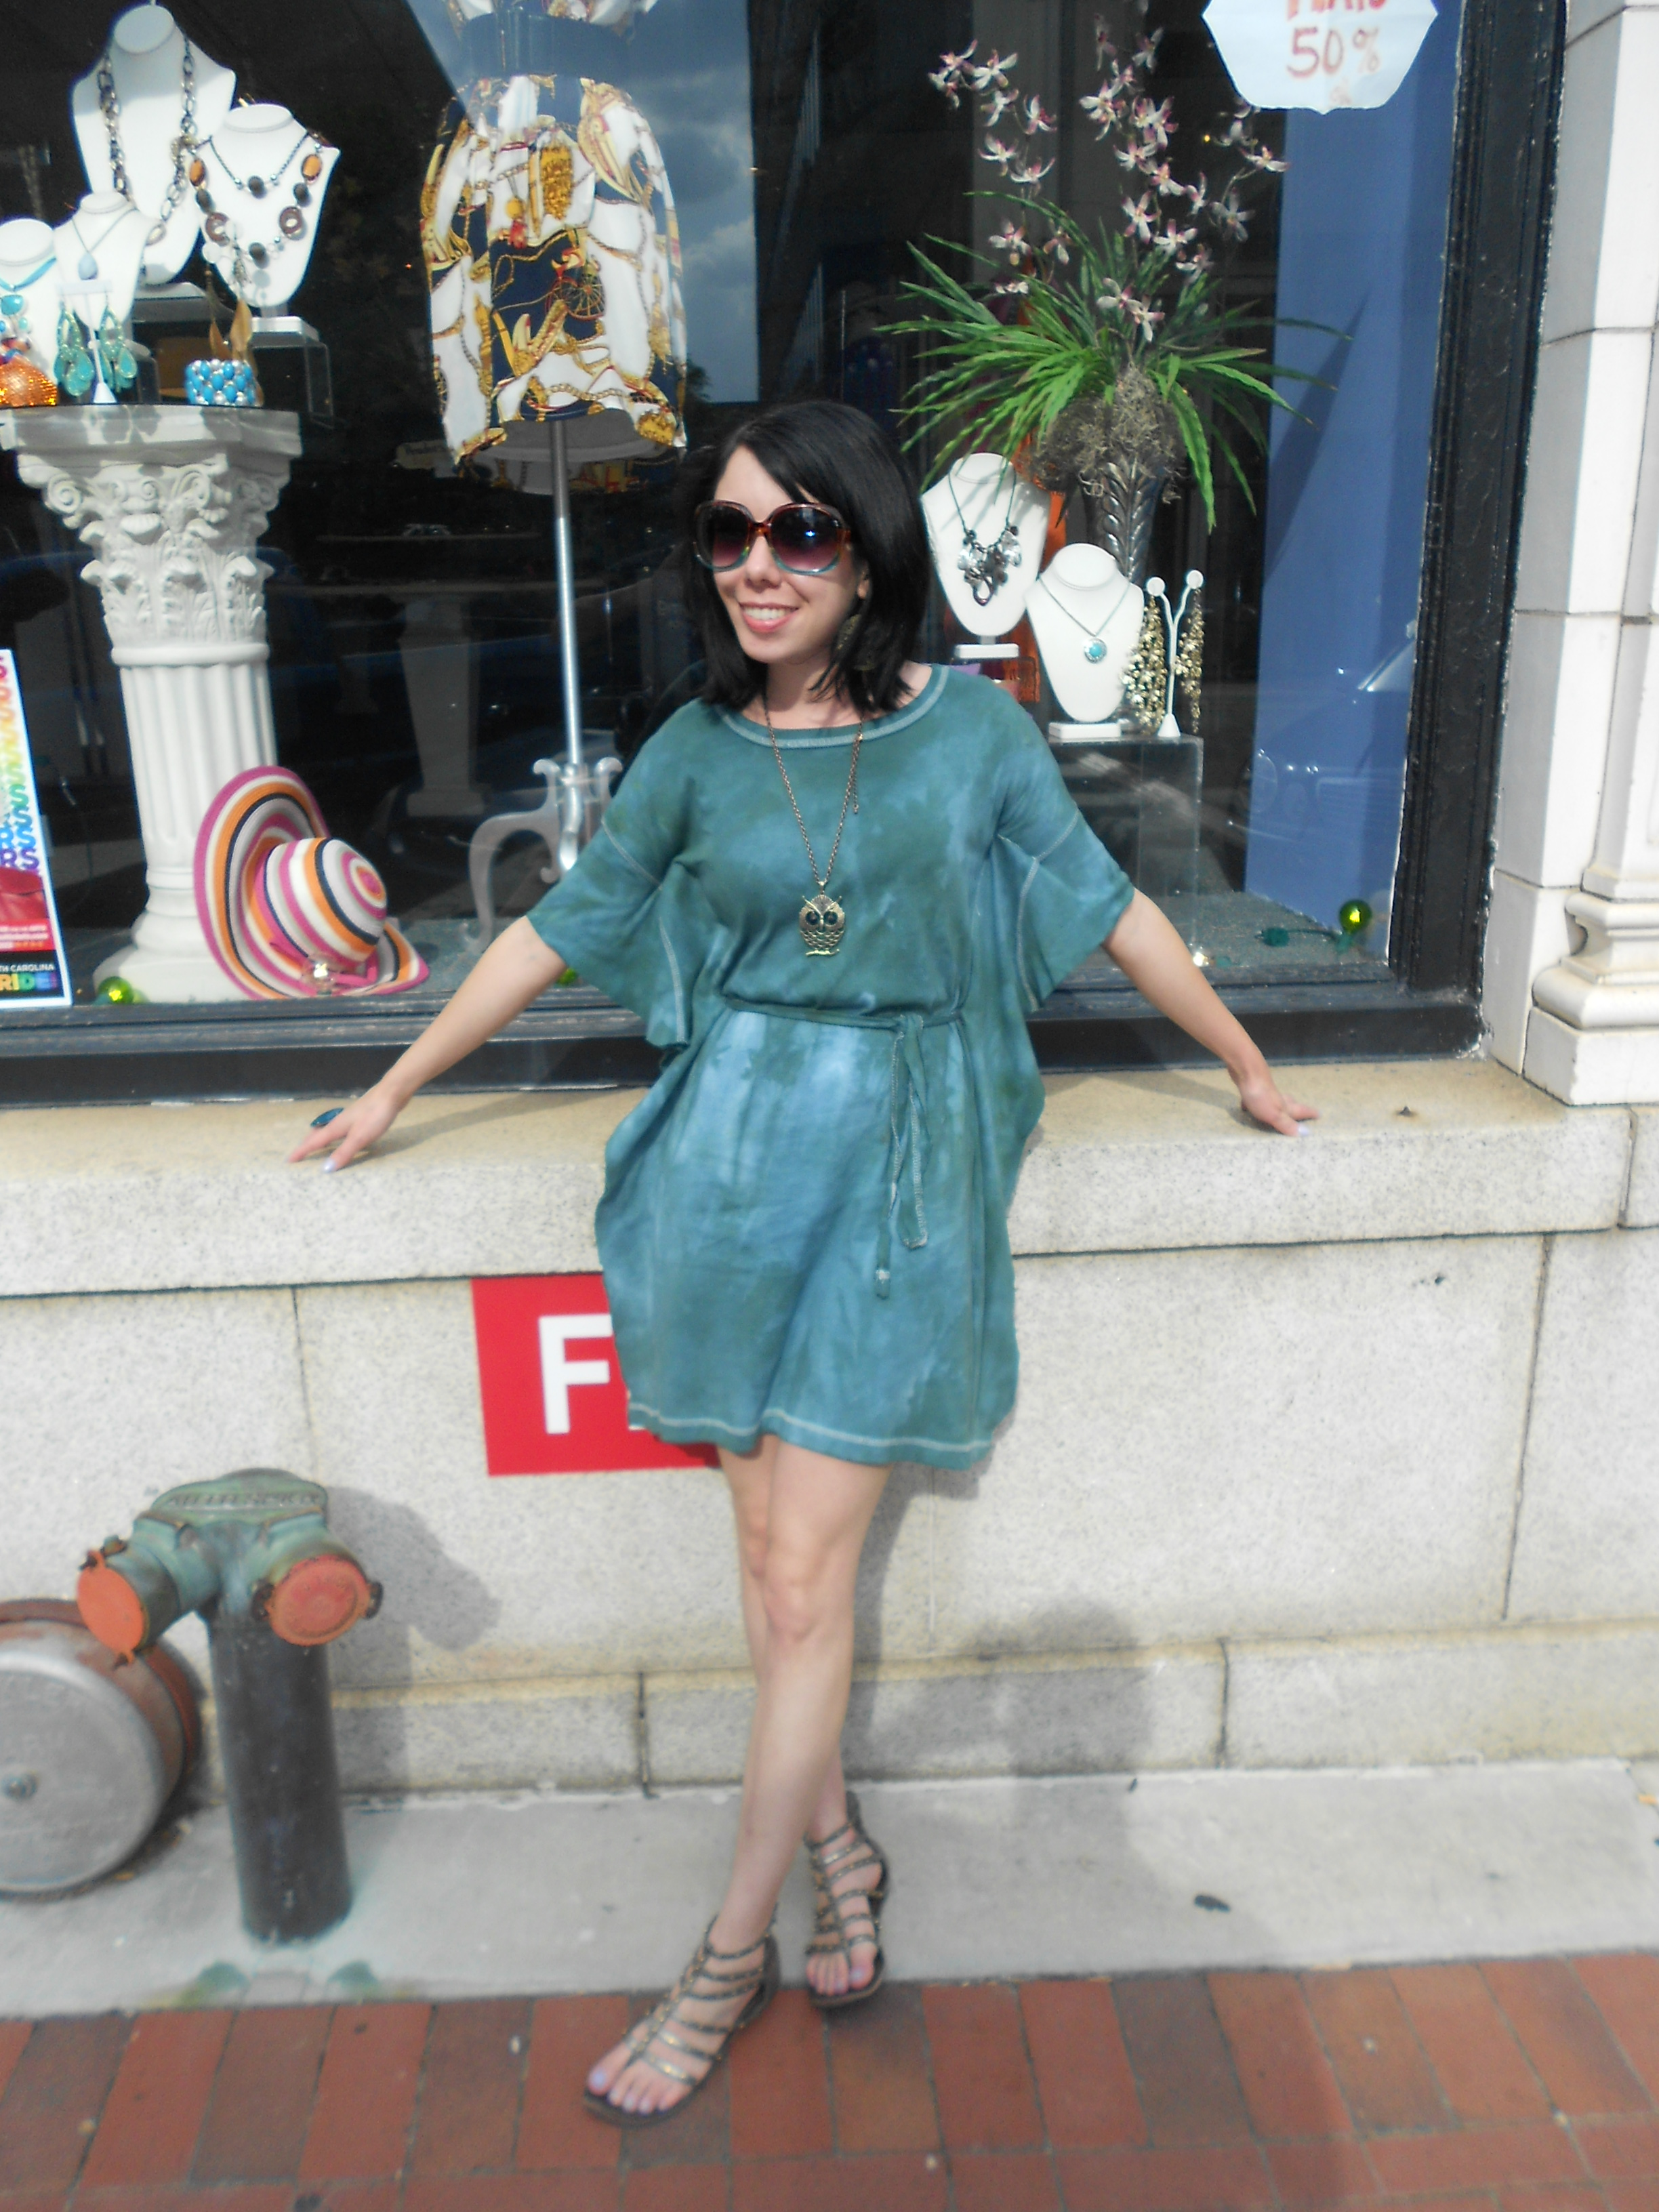 refashionista forest fairy dress: t-shirt to dress refashion after image